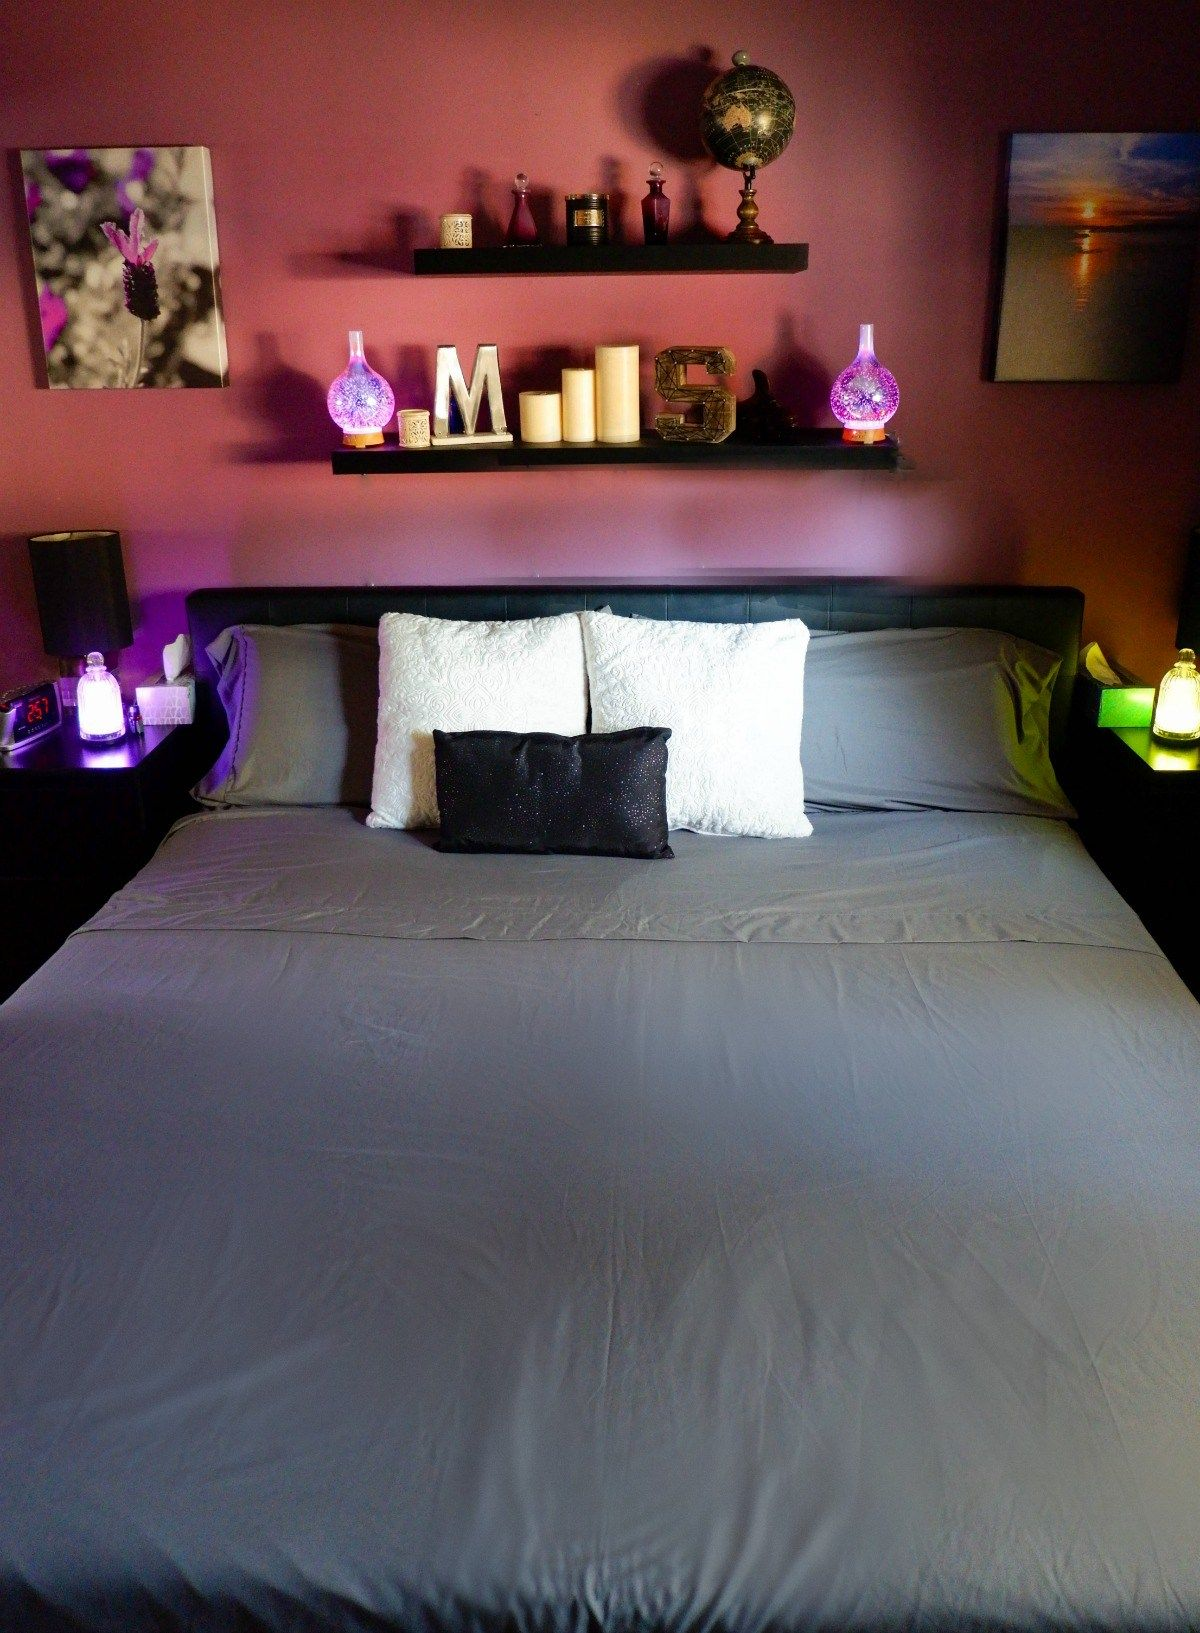 Peachskinsheets Makes It Super Easy To Buy Their Breathable Cooling Anti Wrinkle Anti Microbial Bed Sheets Online You Don T Have To Worr Bed Sheets Online Bed Best Bed Sheets